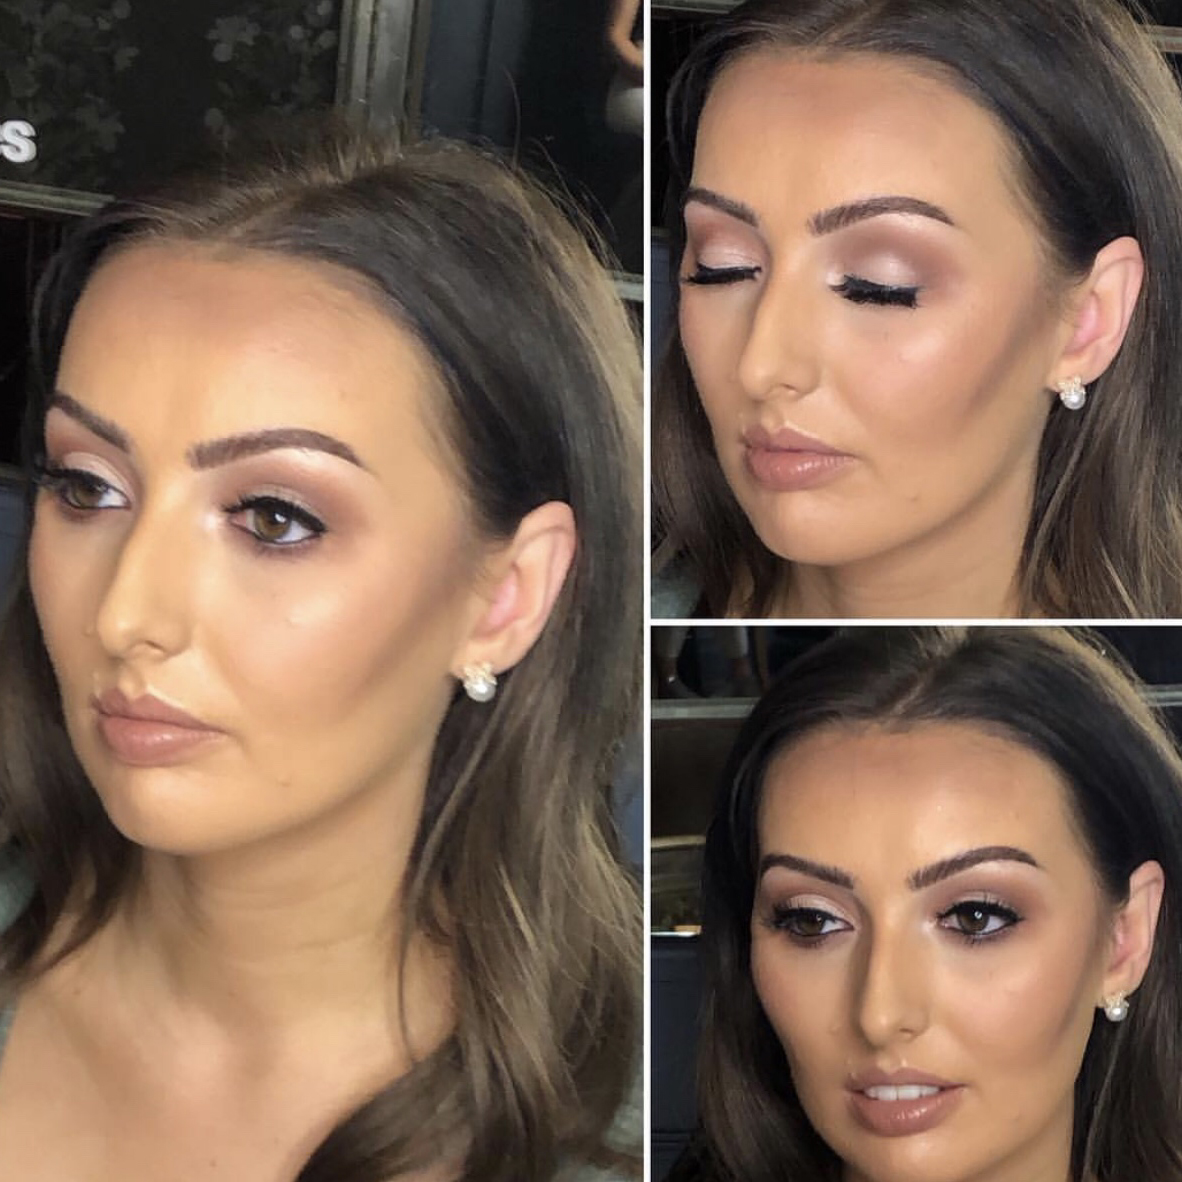 Hello lovelies!  🌸  Are you looking for hair and makeup services for a wedding or your next big event? 🌸  Orchid Blush is a North West-based hair and makeup company. We cover most areas including Liverpool, Wirral, Cheshire, and many more. We can come to you and provide both hair and makeup services (or just hair or just makeup services - whatever you need) or you can pop into our studio for a pamper.. 🌸  Please feel free to join our group or visit our website - we have lots of images for you to look at and we have great feedback.  We can also provide discounted group packages for hen parties or any other special occasions.  You can contact us at:  ✨T. 07552130541  ✨E. info@orchidblushbeauty.co.uk  ✨https://www.facebook.com/orchidblushteam/?fref=ts  ✨ http://www.orchidblush.co.uk/